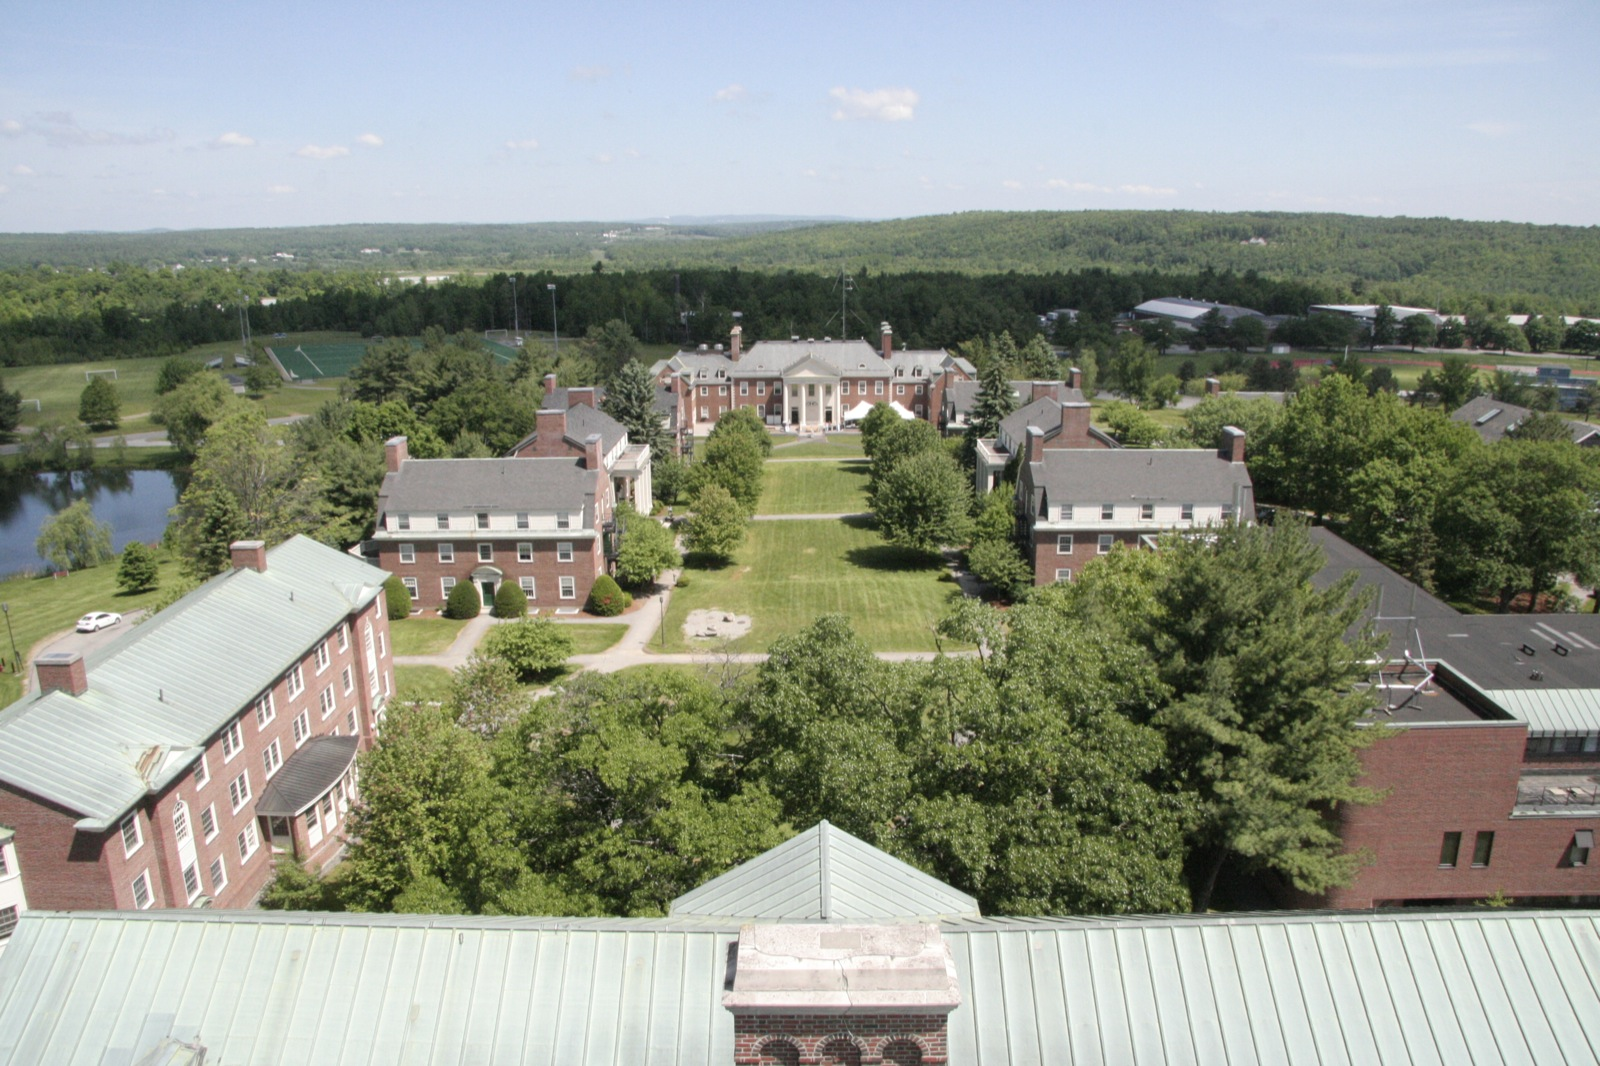 Elevation Of Colby College Mayflower Hill Dr Waterville Me Usa